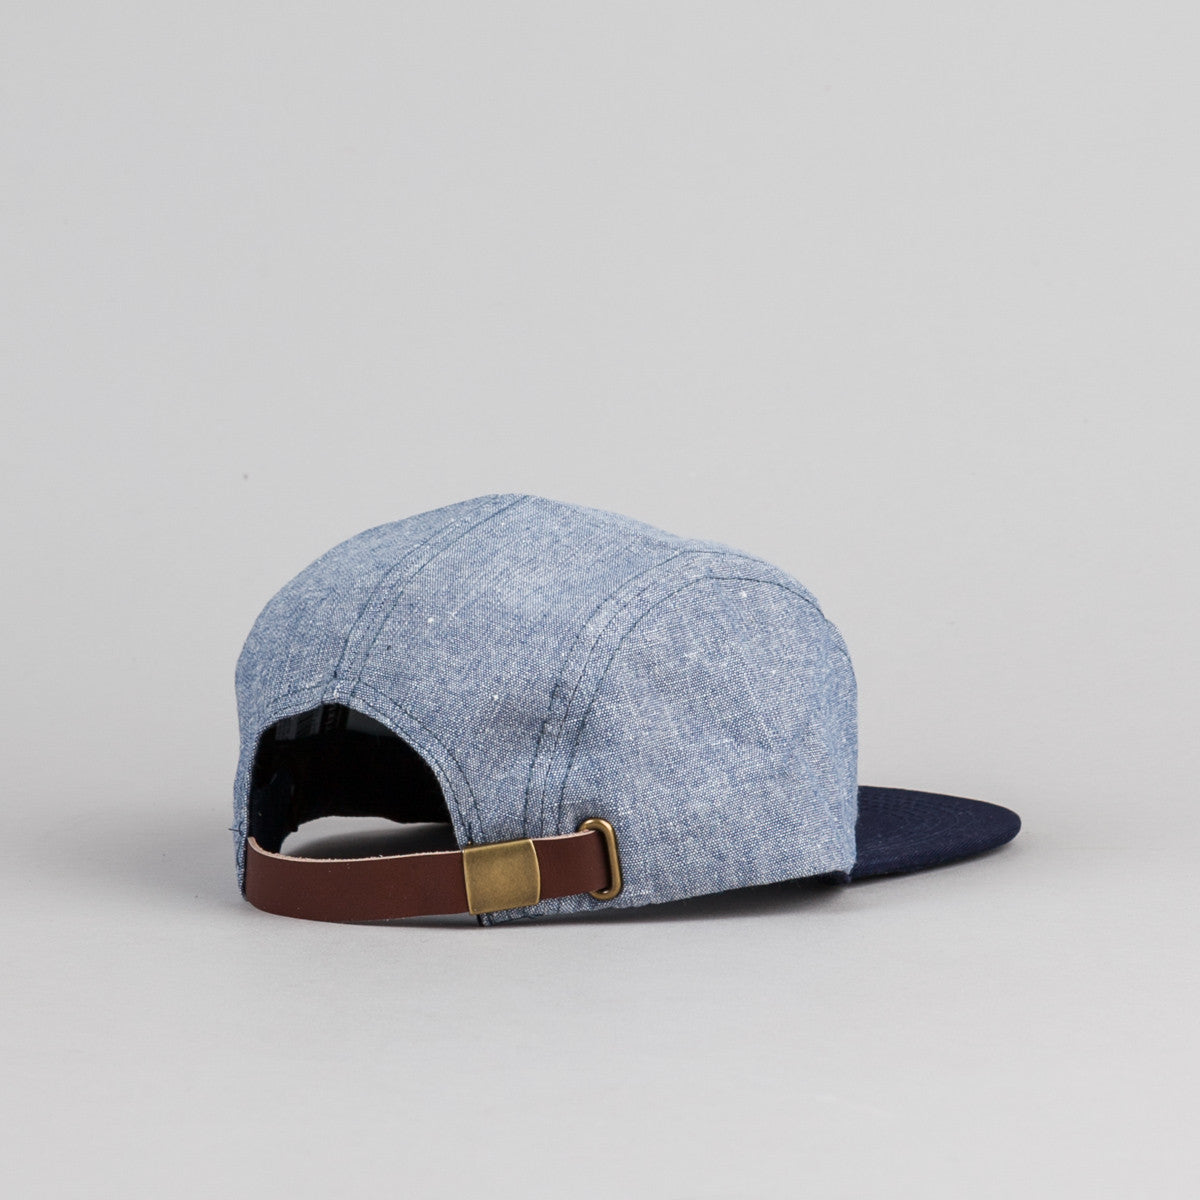 Brixton Hoover 5 Panel Cap - Light Blue / Navy